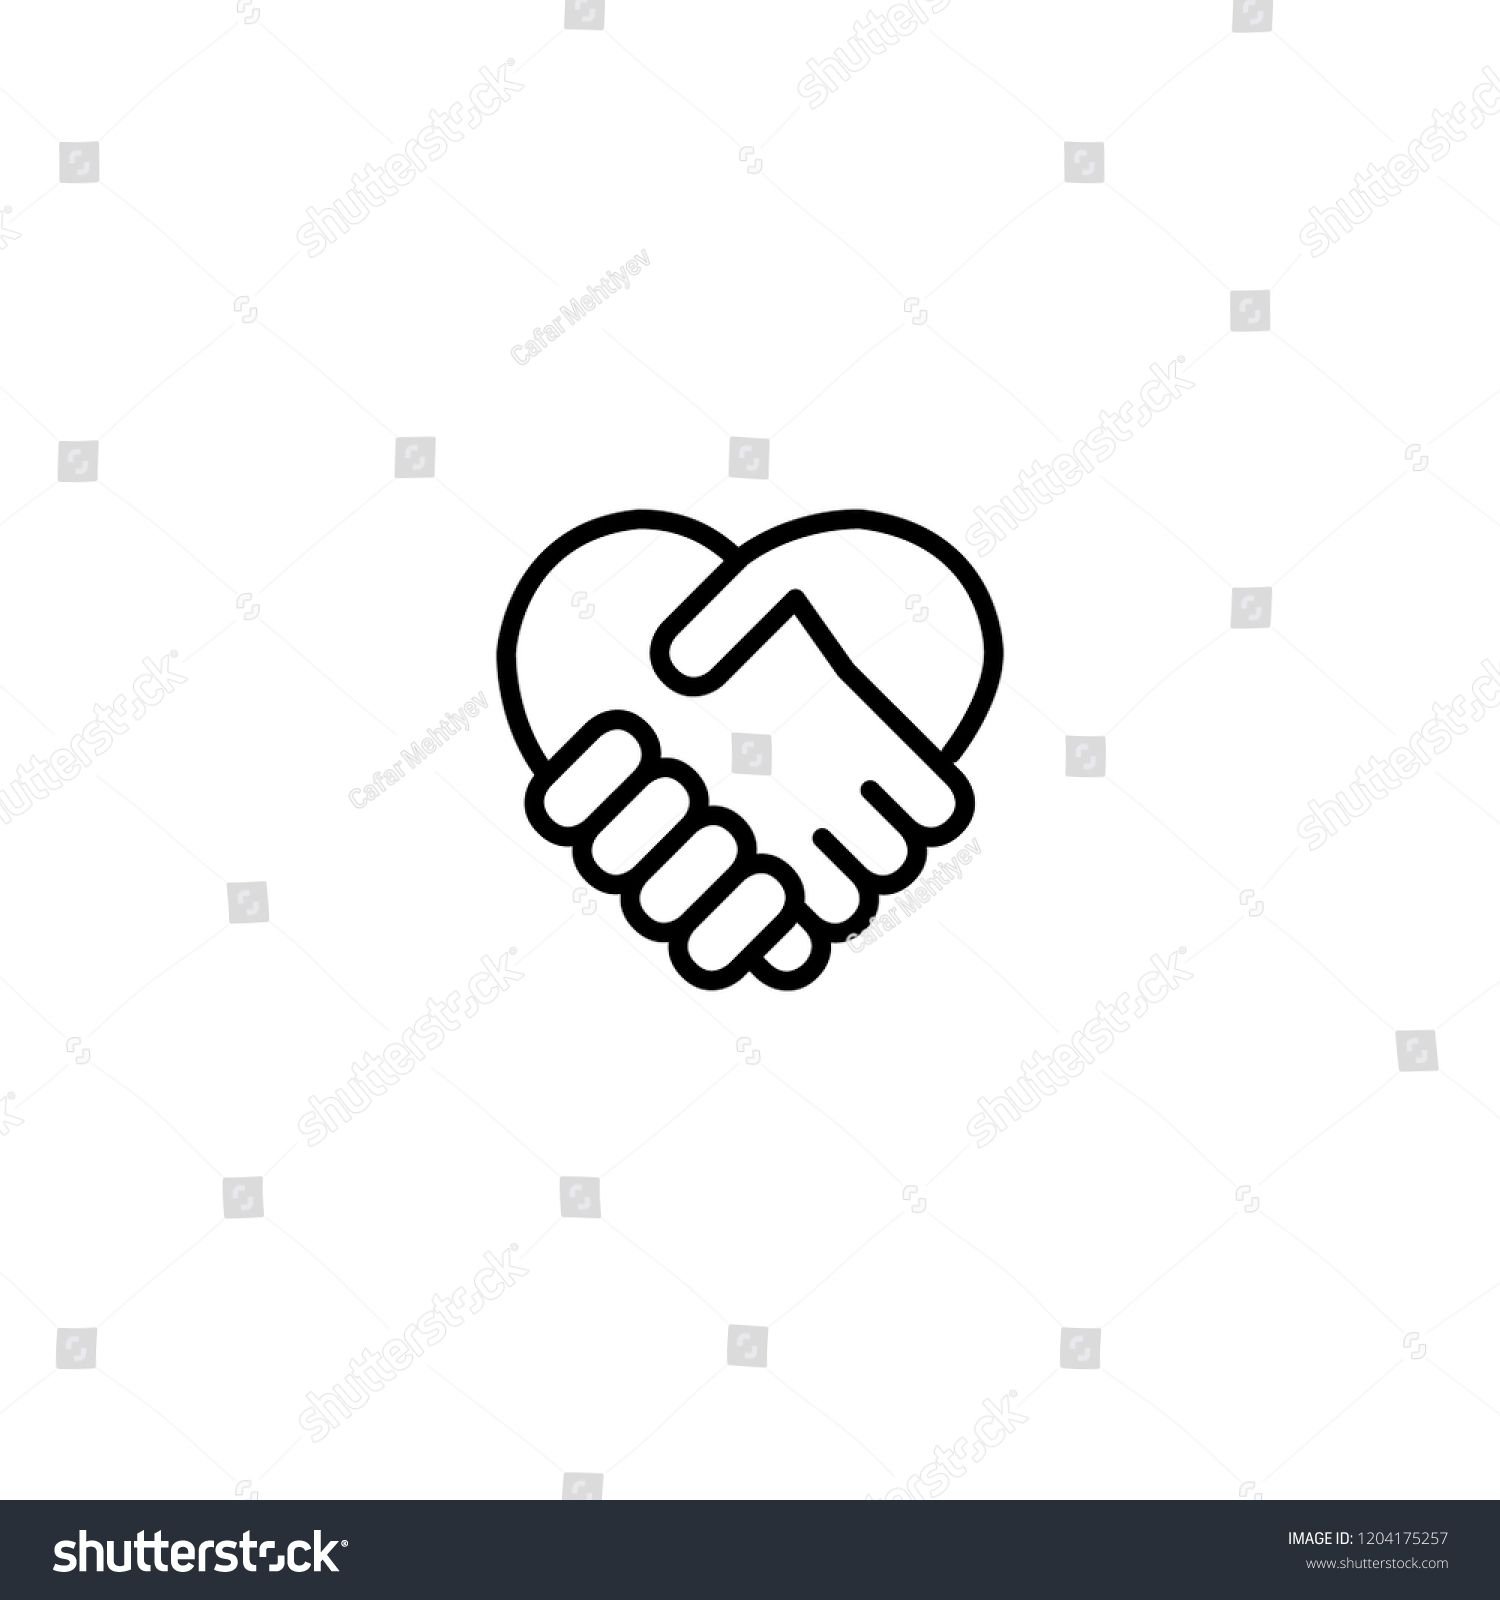 Business Agree Icon Unity Icon Hand Icon Hand And Heart Sign Icon Agree Business Unity Hands Icon Unity Sketch Book